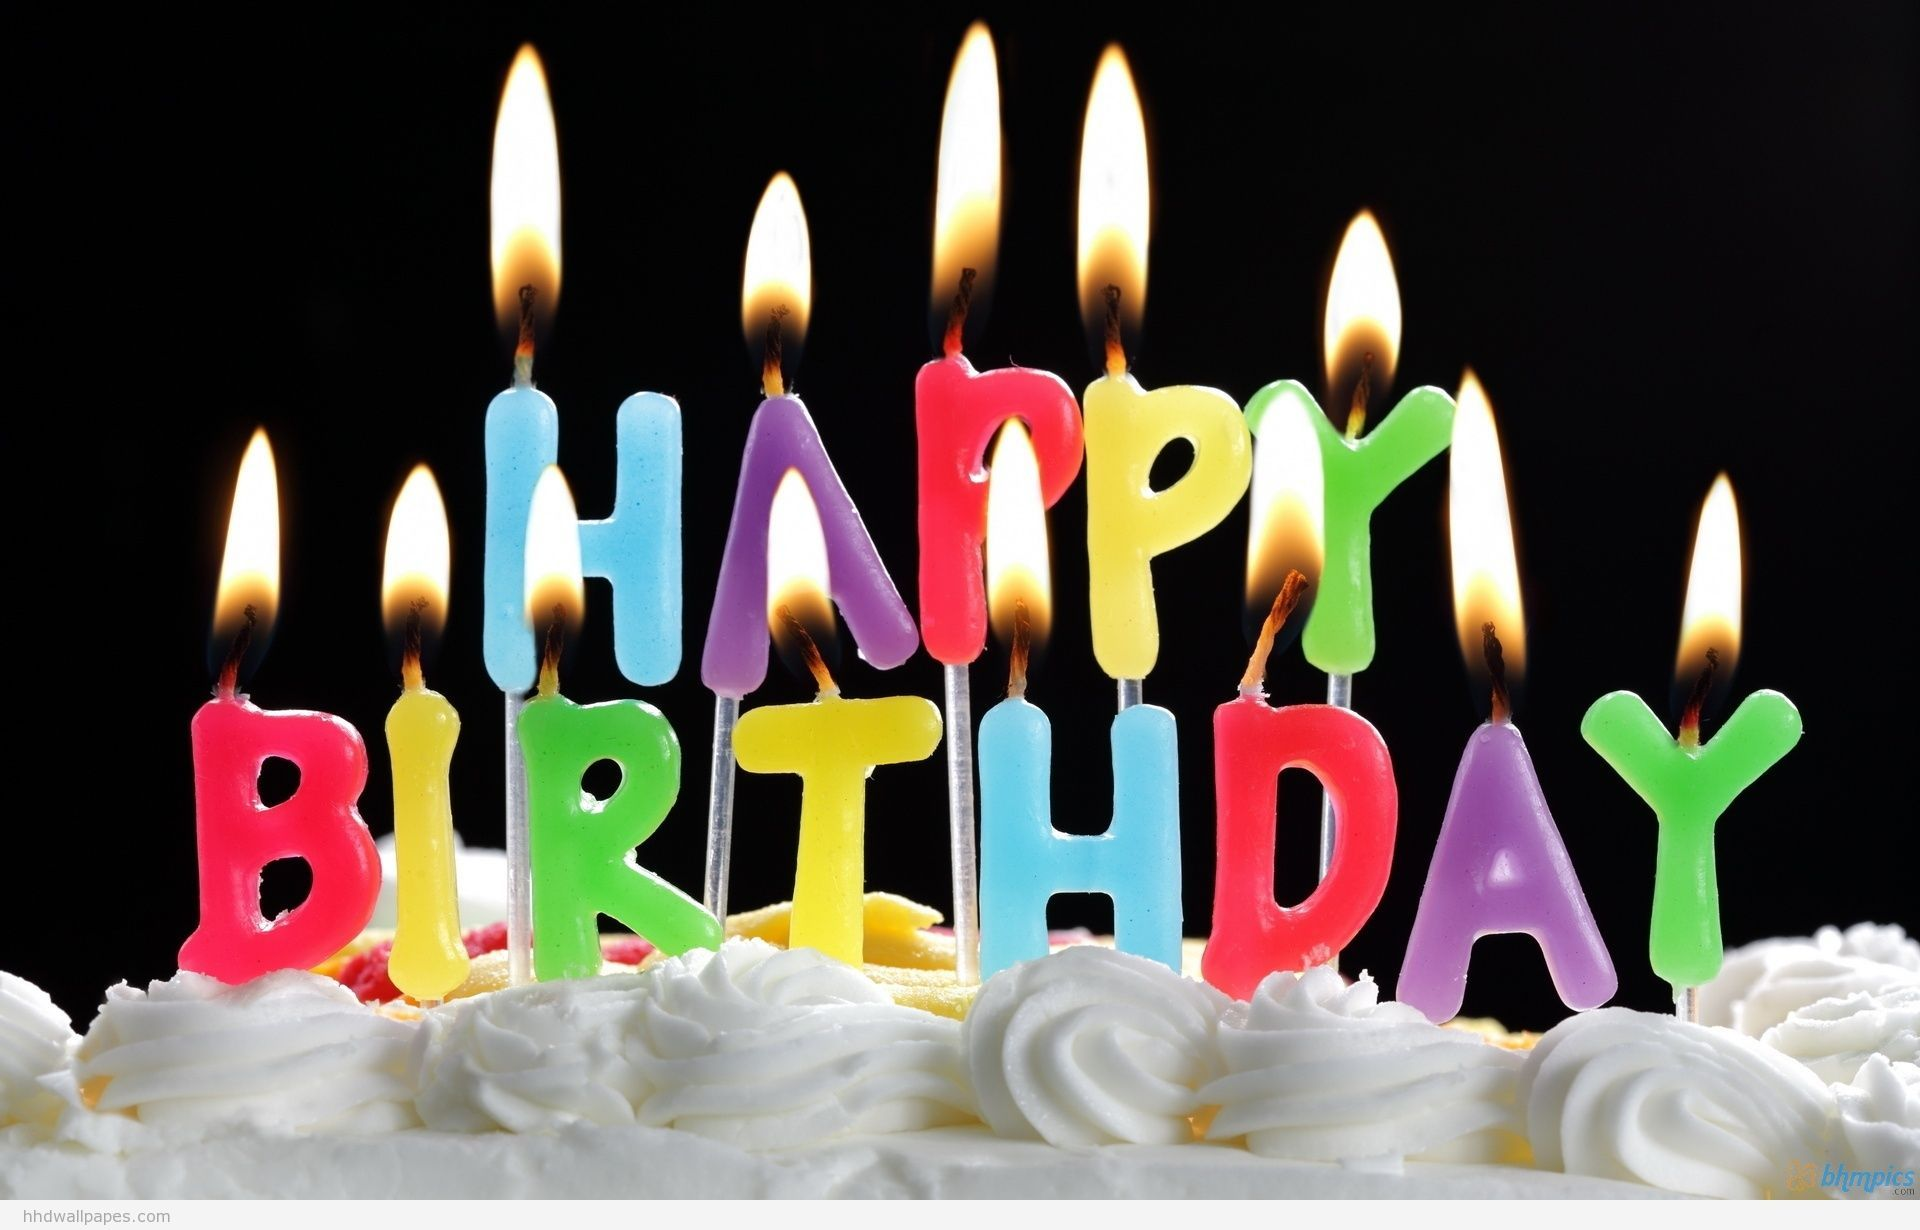 Happy birthday wallpaper with names happy birthday pinterest happy birthday wishes messages quotes pictures dp status kristyandbryce Gallery